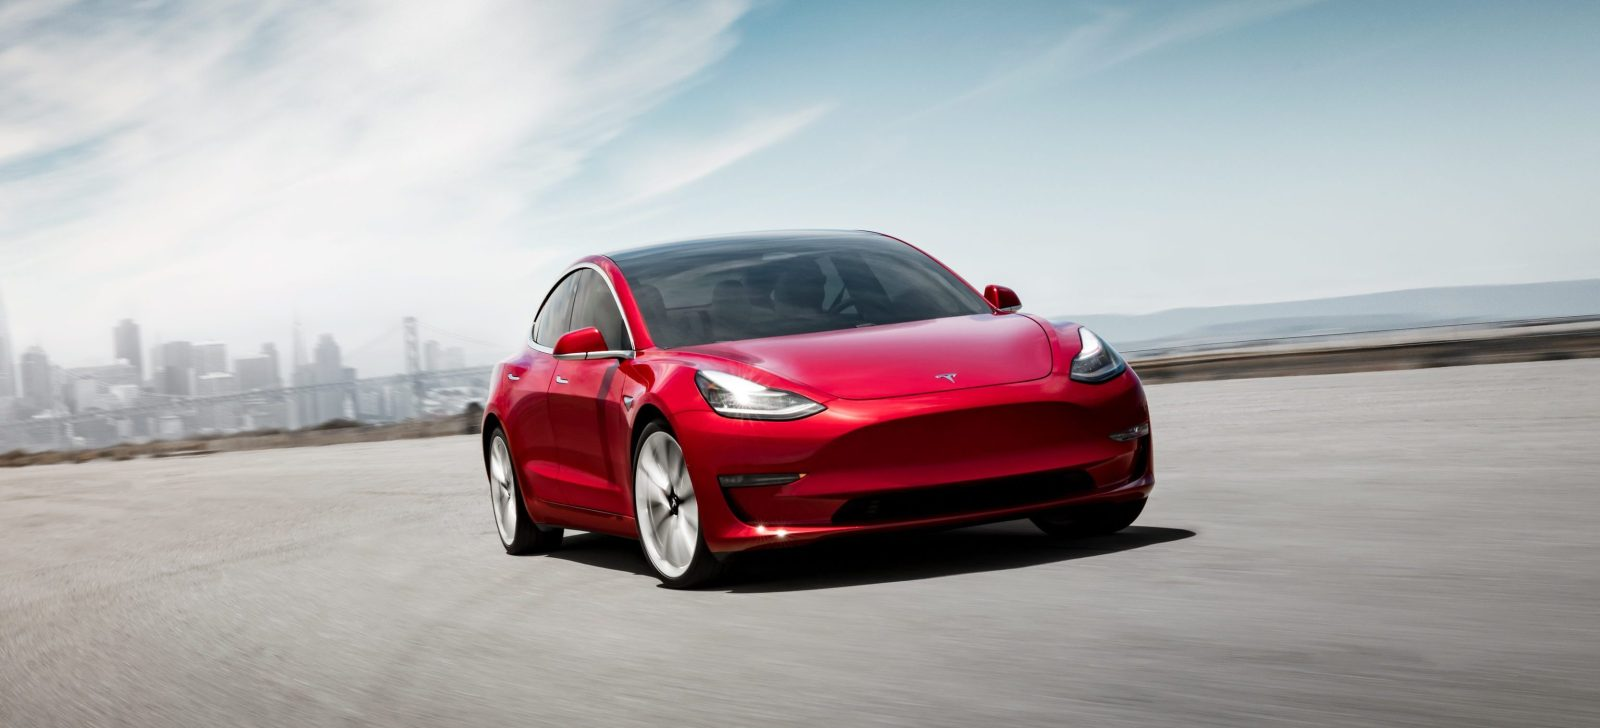 Tesla Model 3 tops list of vehicles that 'bring the most joy' - Electrek thumbnail